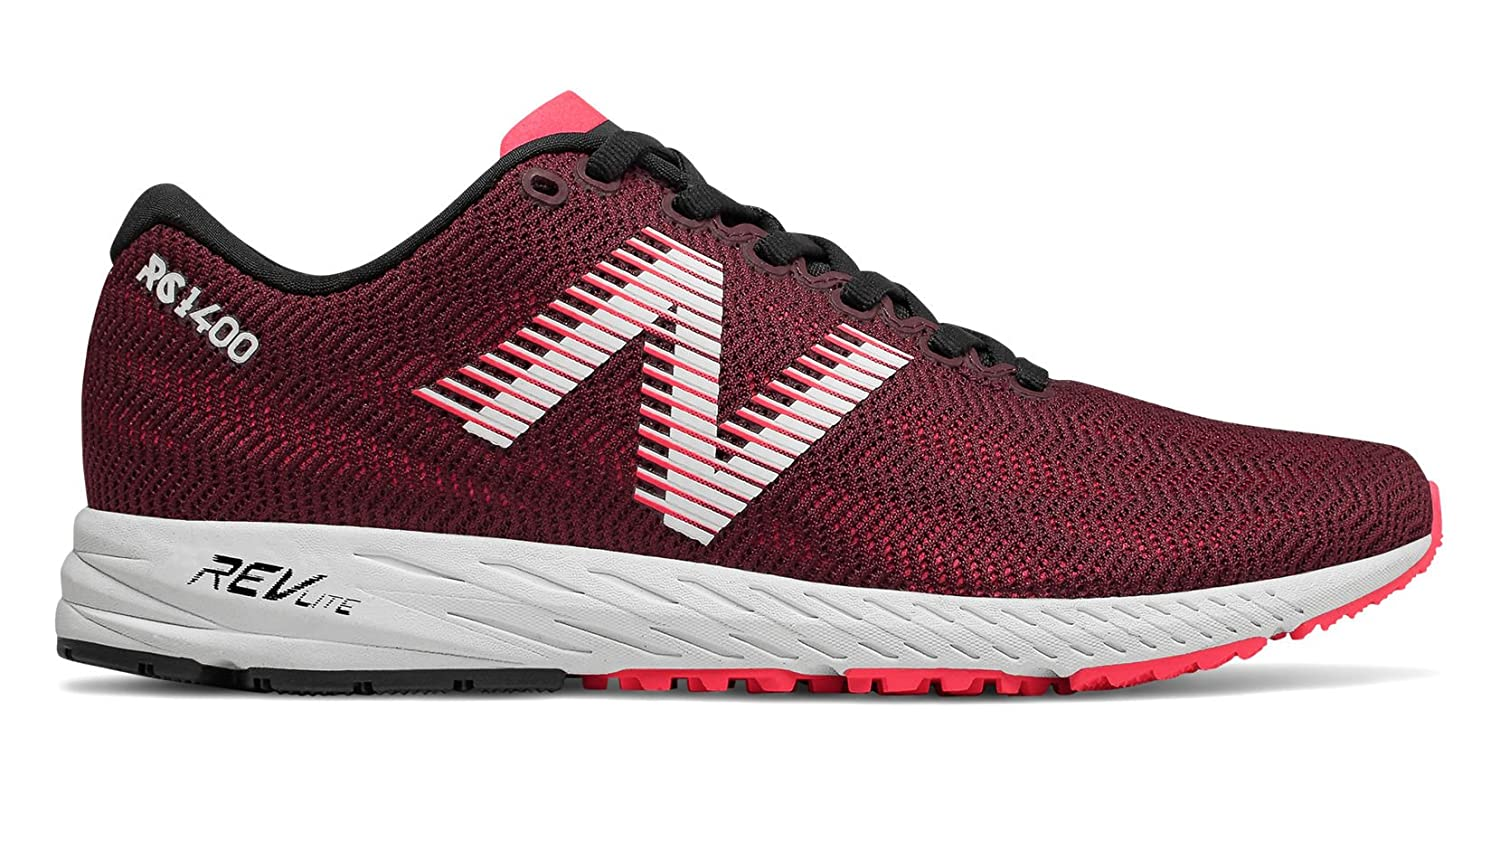 New Balance Women's 1400v6 Running Shoe B077SK4J1V 9 B(M) US|Nubuck Burgundy/Bright Cherry